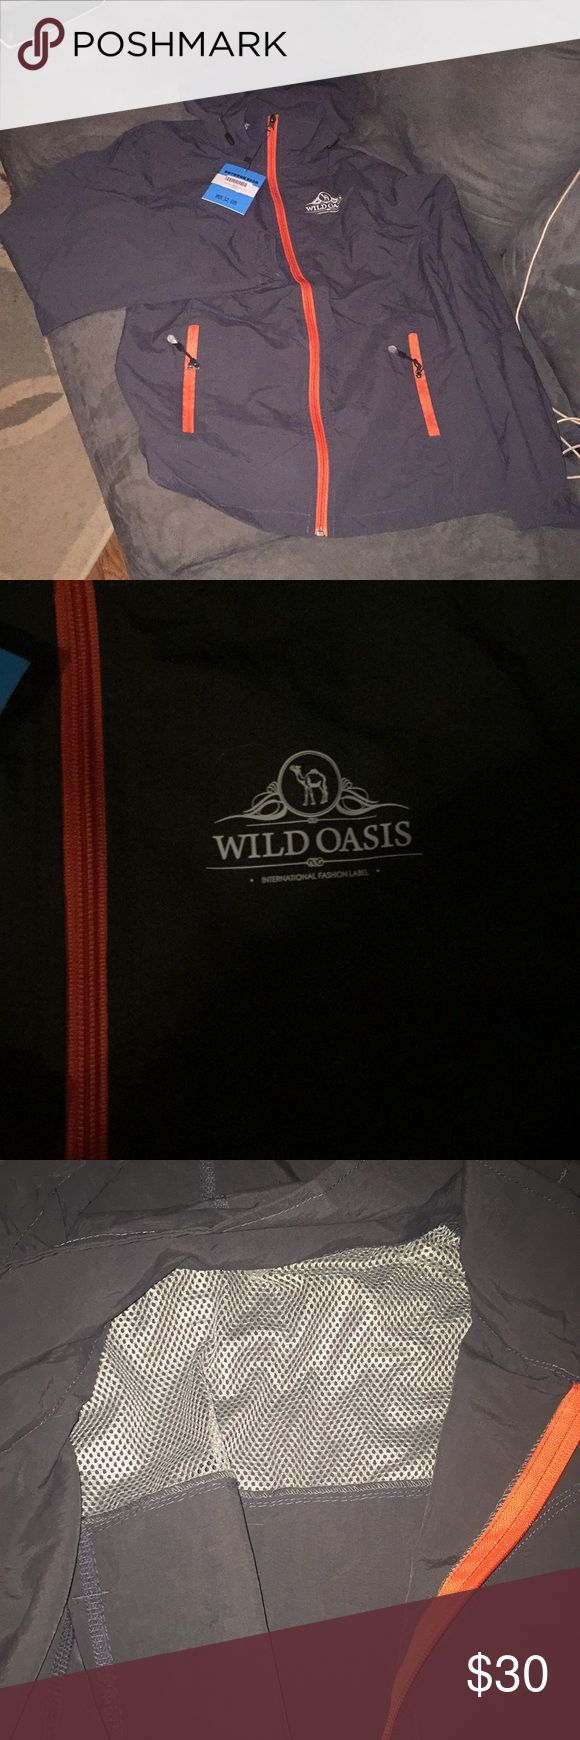 Lightweight jacket Dark gray with orange accents. Lightweight with a vent in the back. Great jacket for runners and golfers! Wild Oasis Jackets & Coats